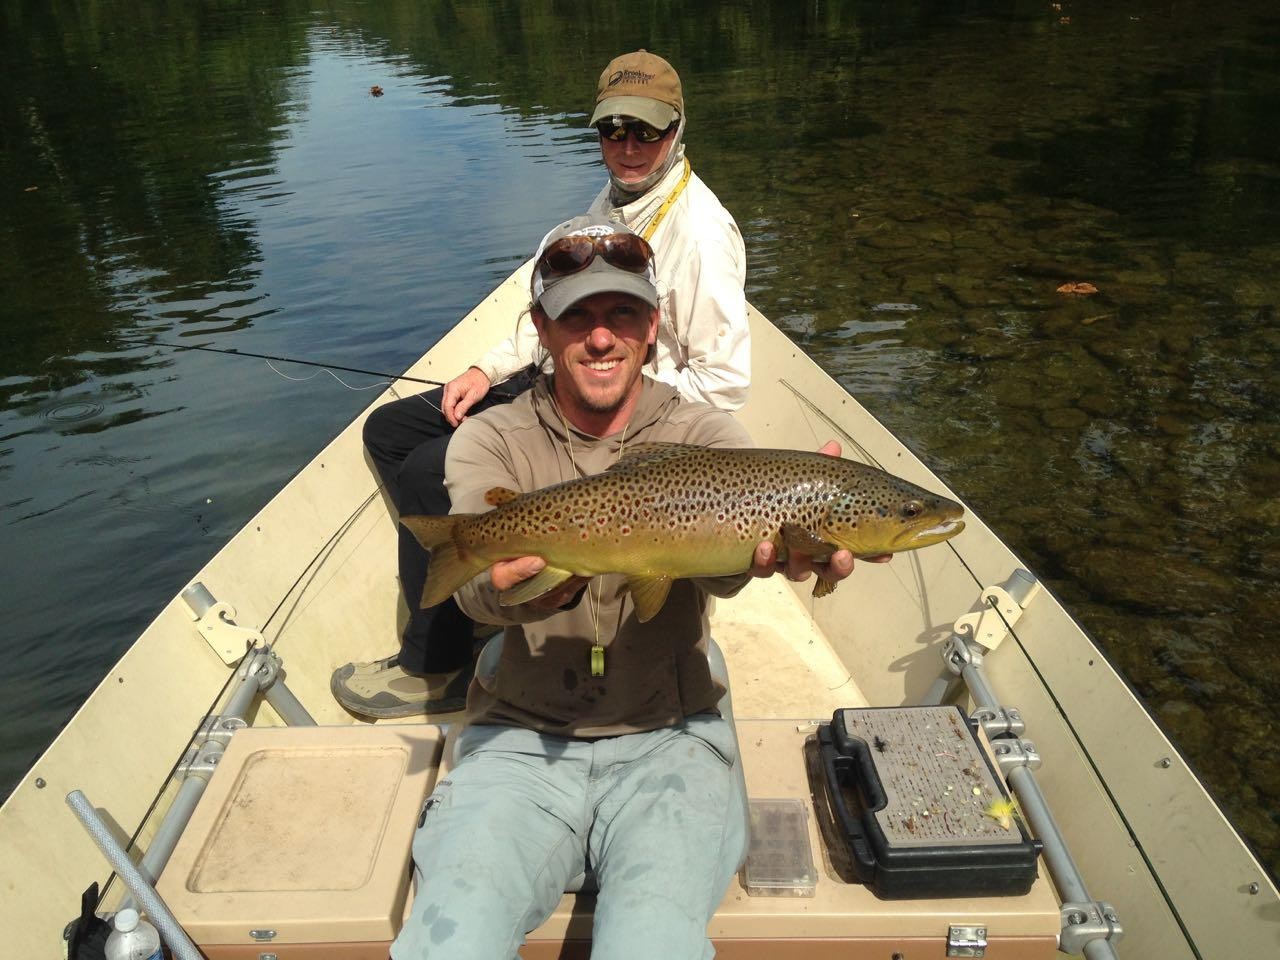 South holston brown trout riverstone fly fishing for South holston river fishing report